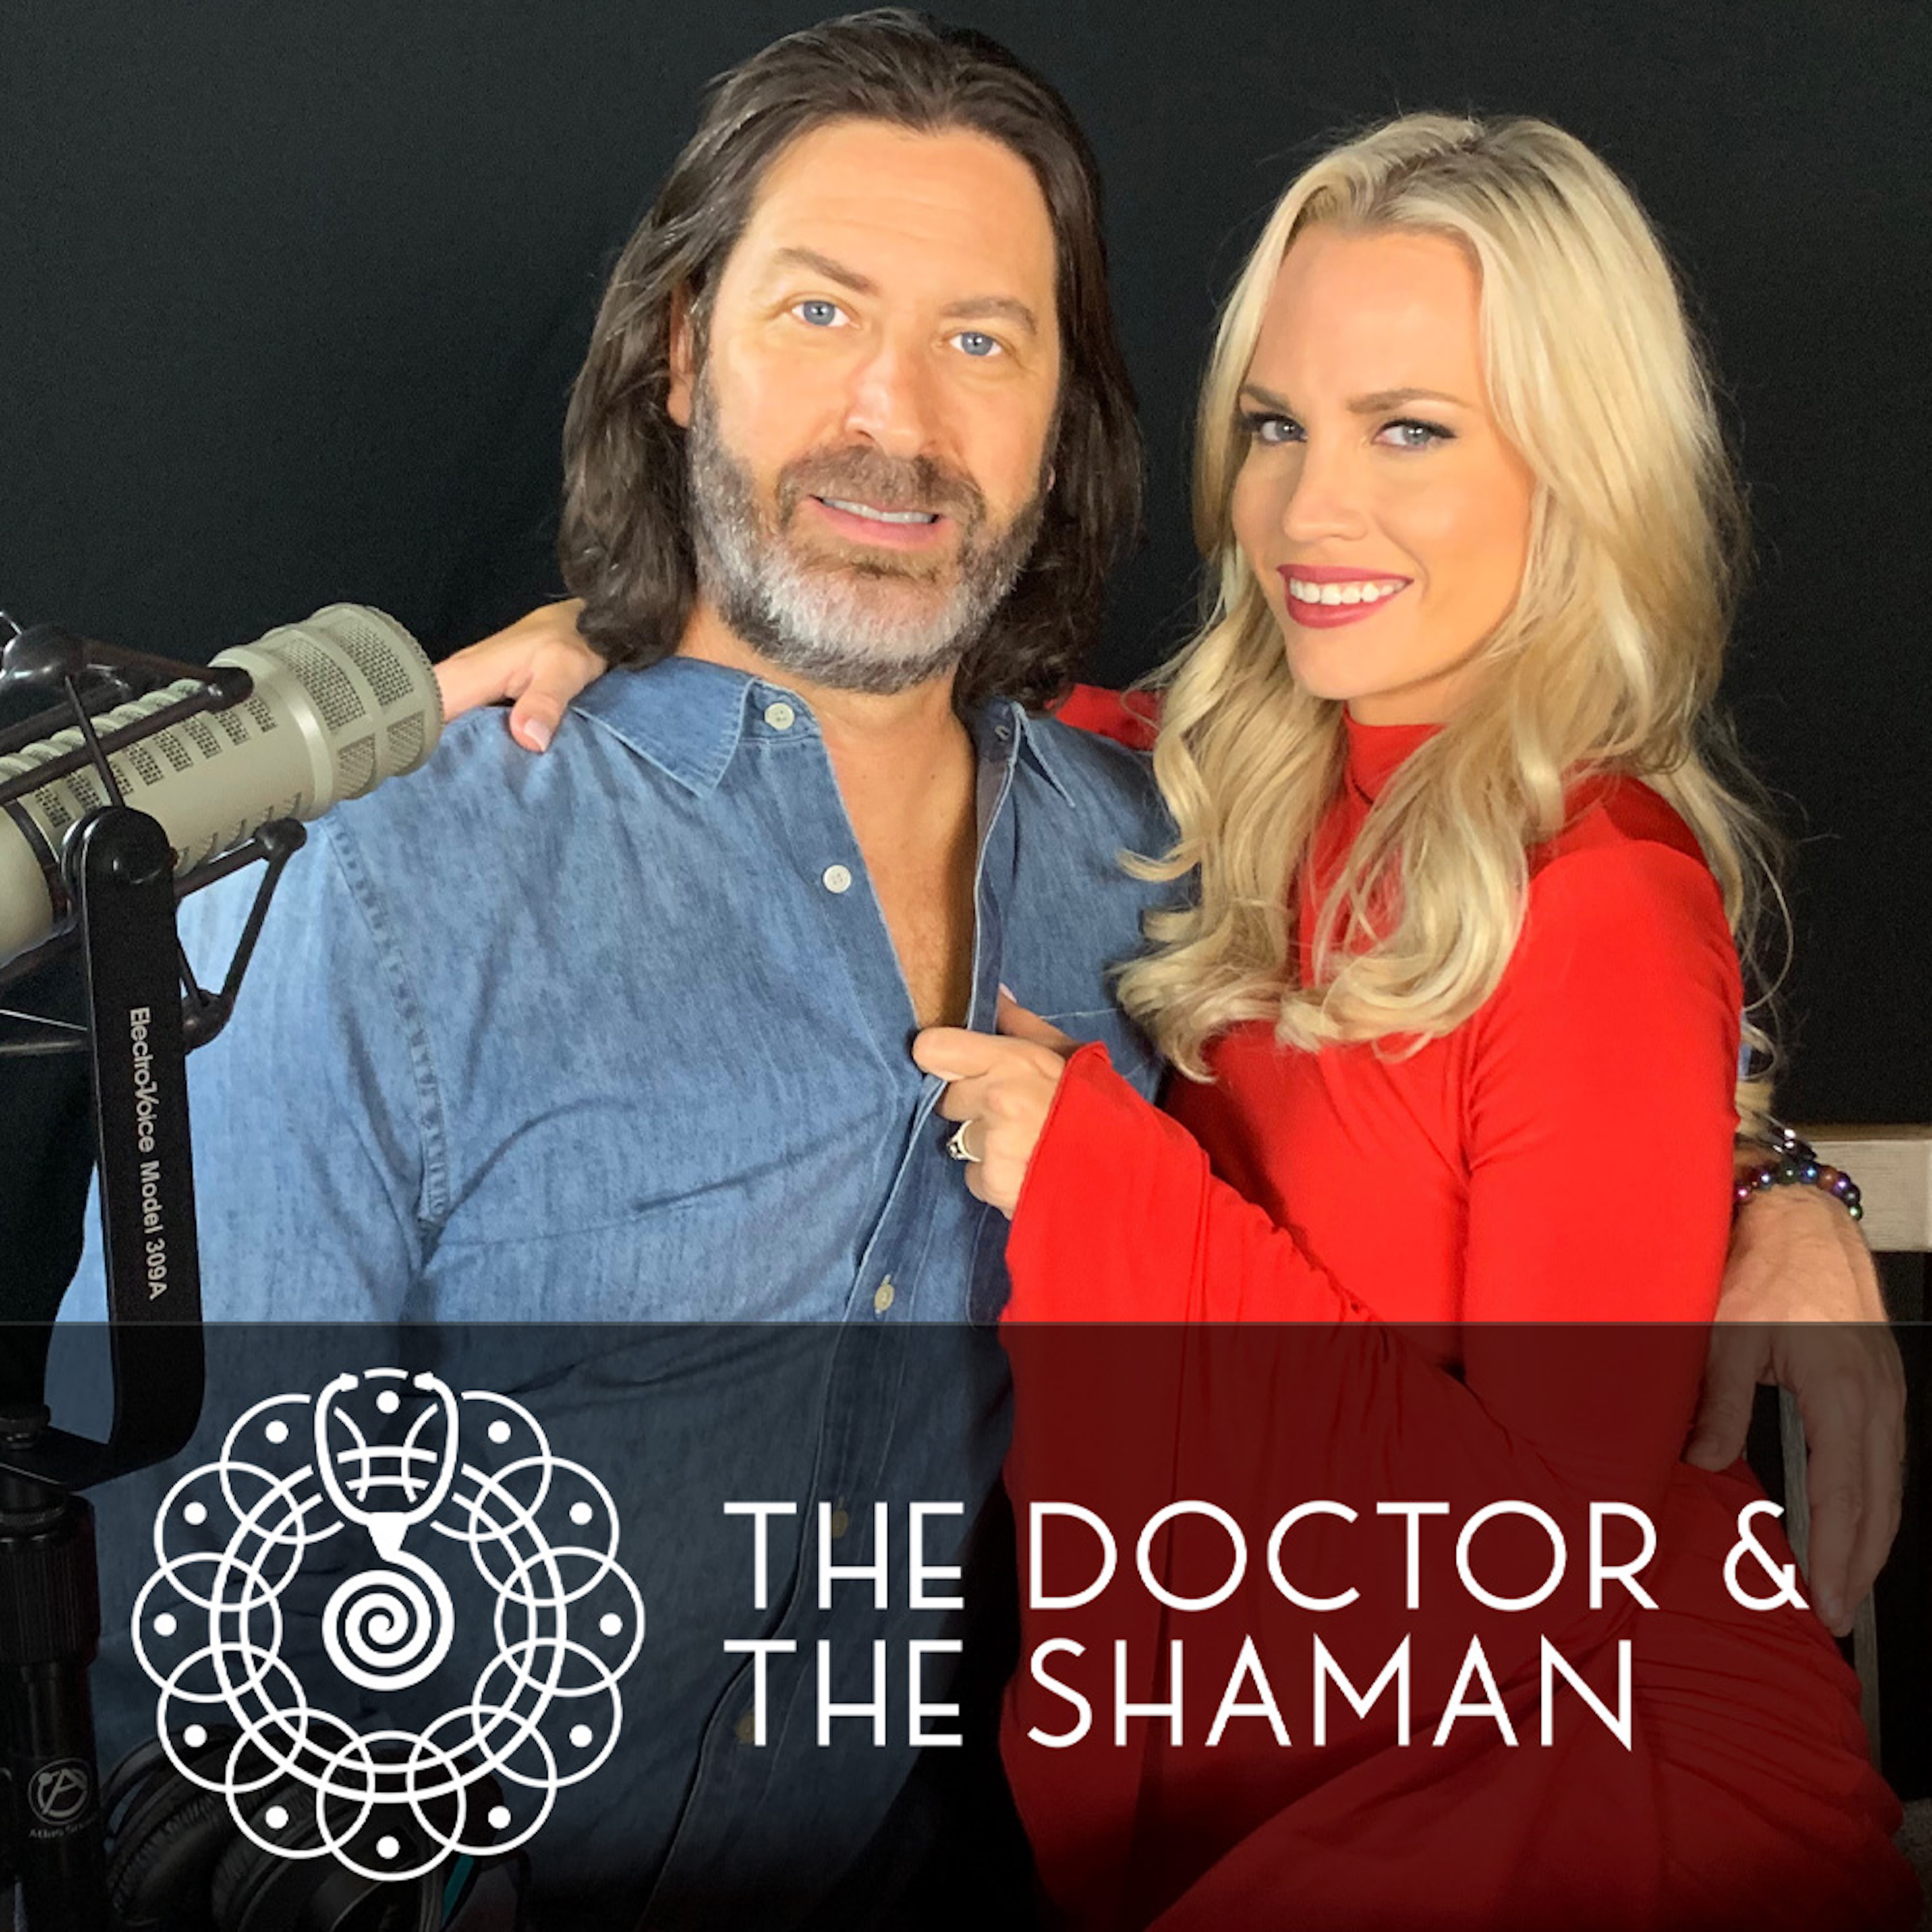 The Dr. and The Shaman Podcast